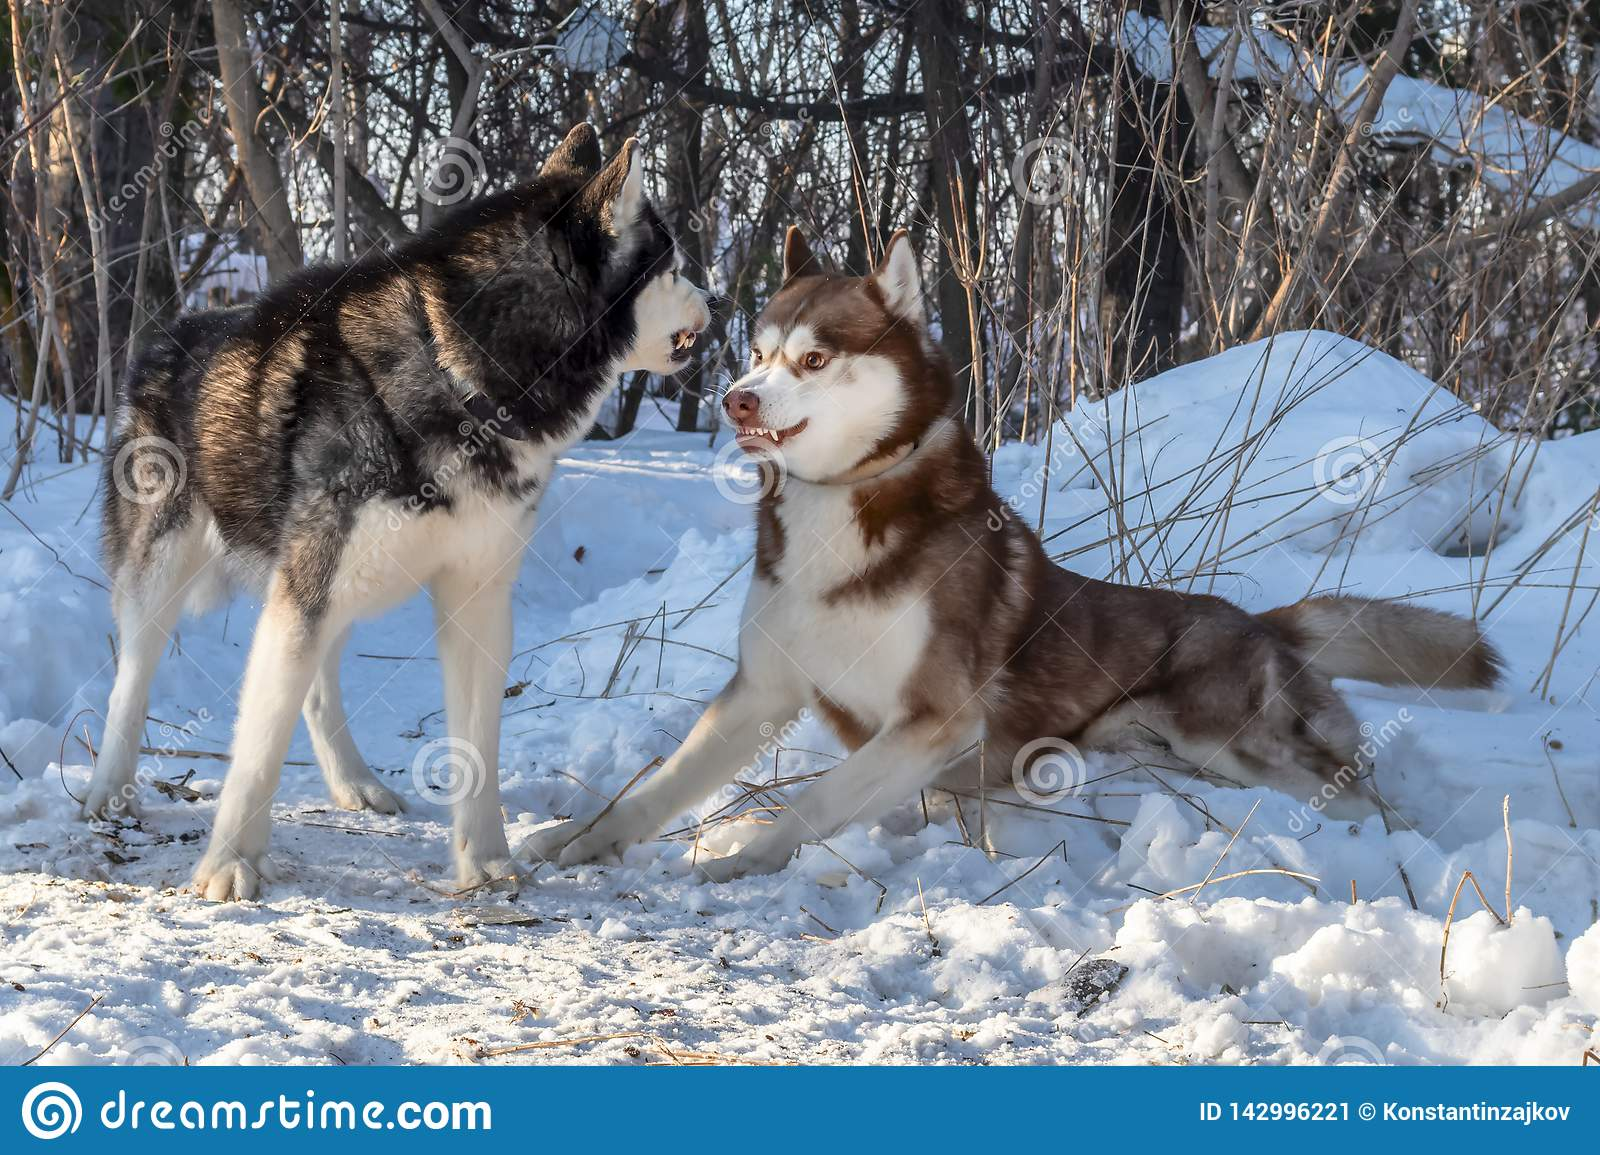 Siberian husky dogs playing in winter forest. Fight, growl, ready to fight with hair on end in fighting stance.